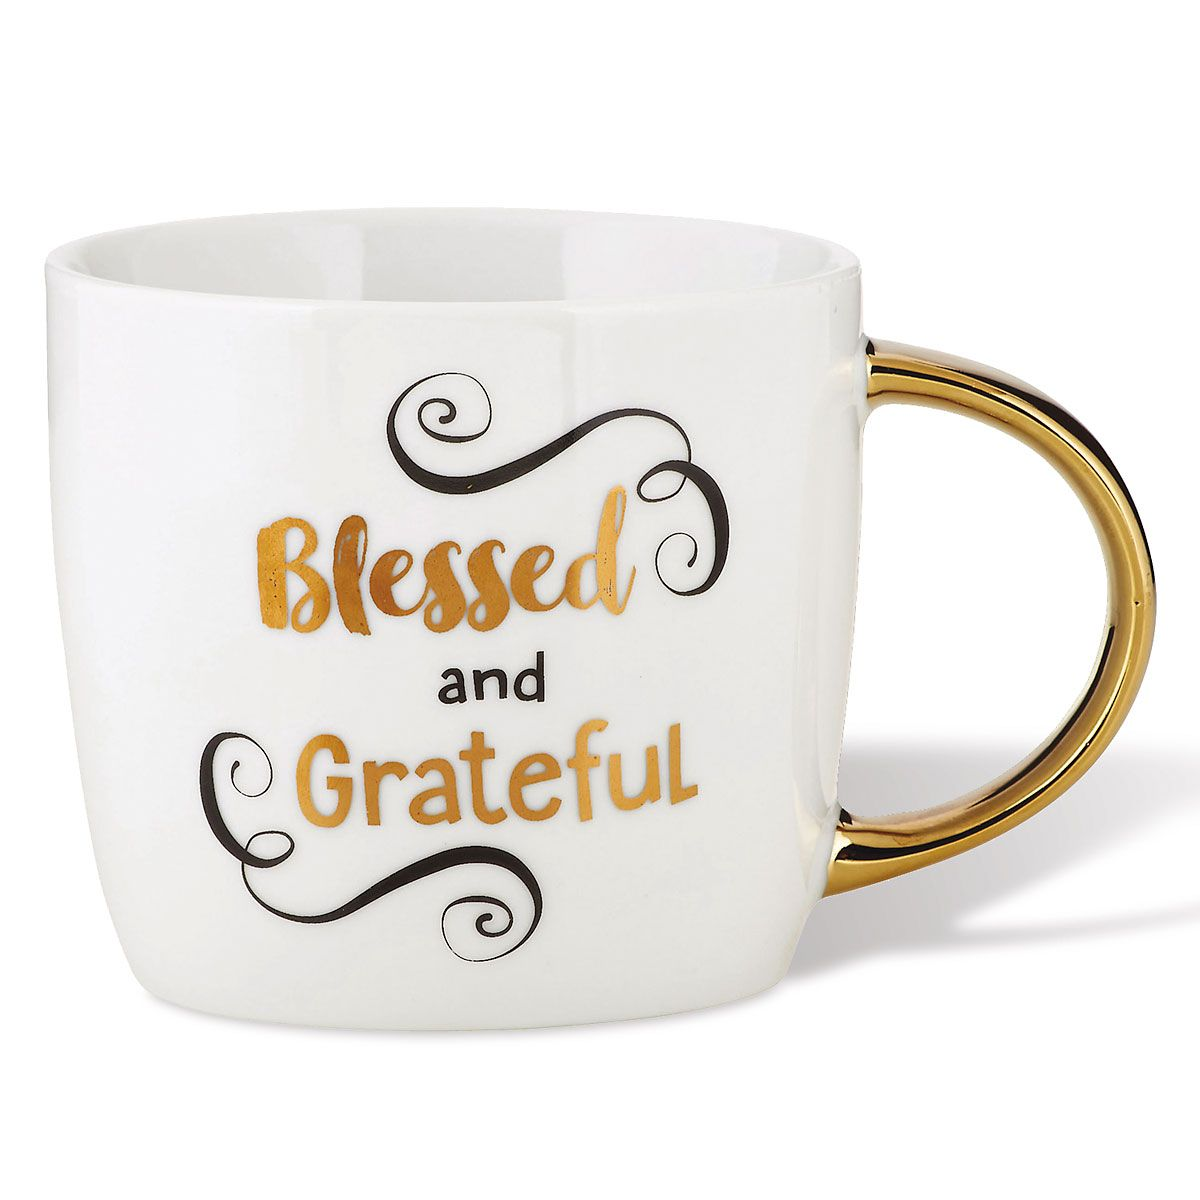 Blessed and Grateful Mug